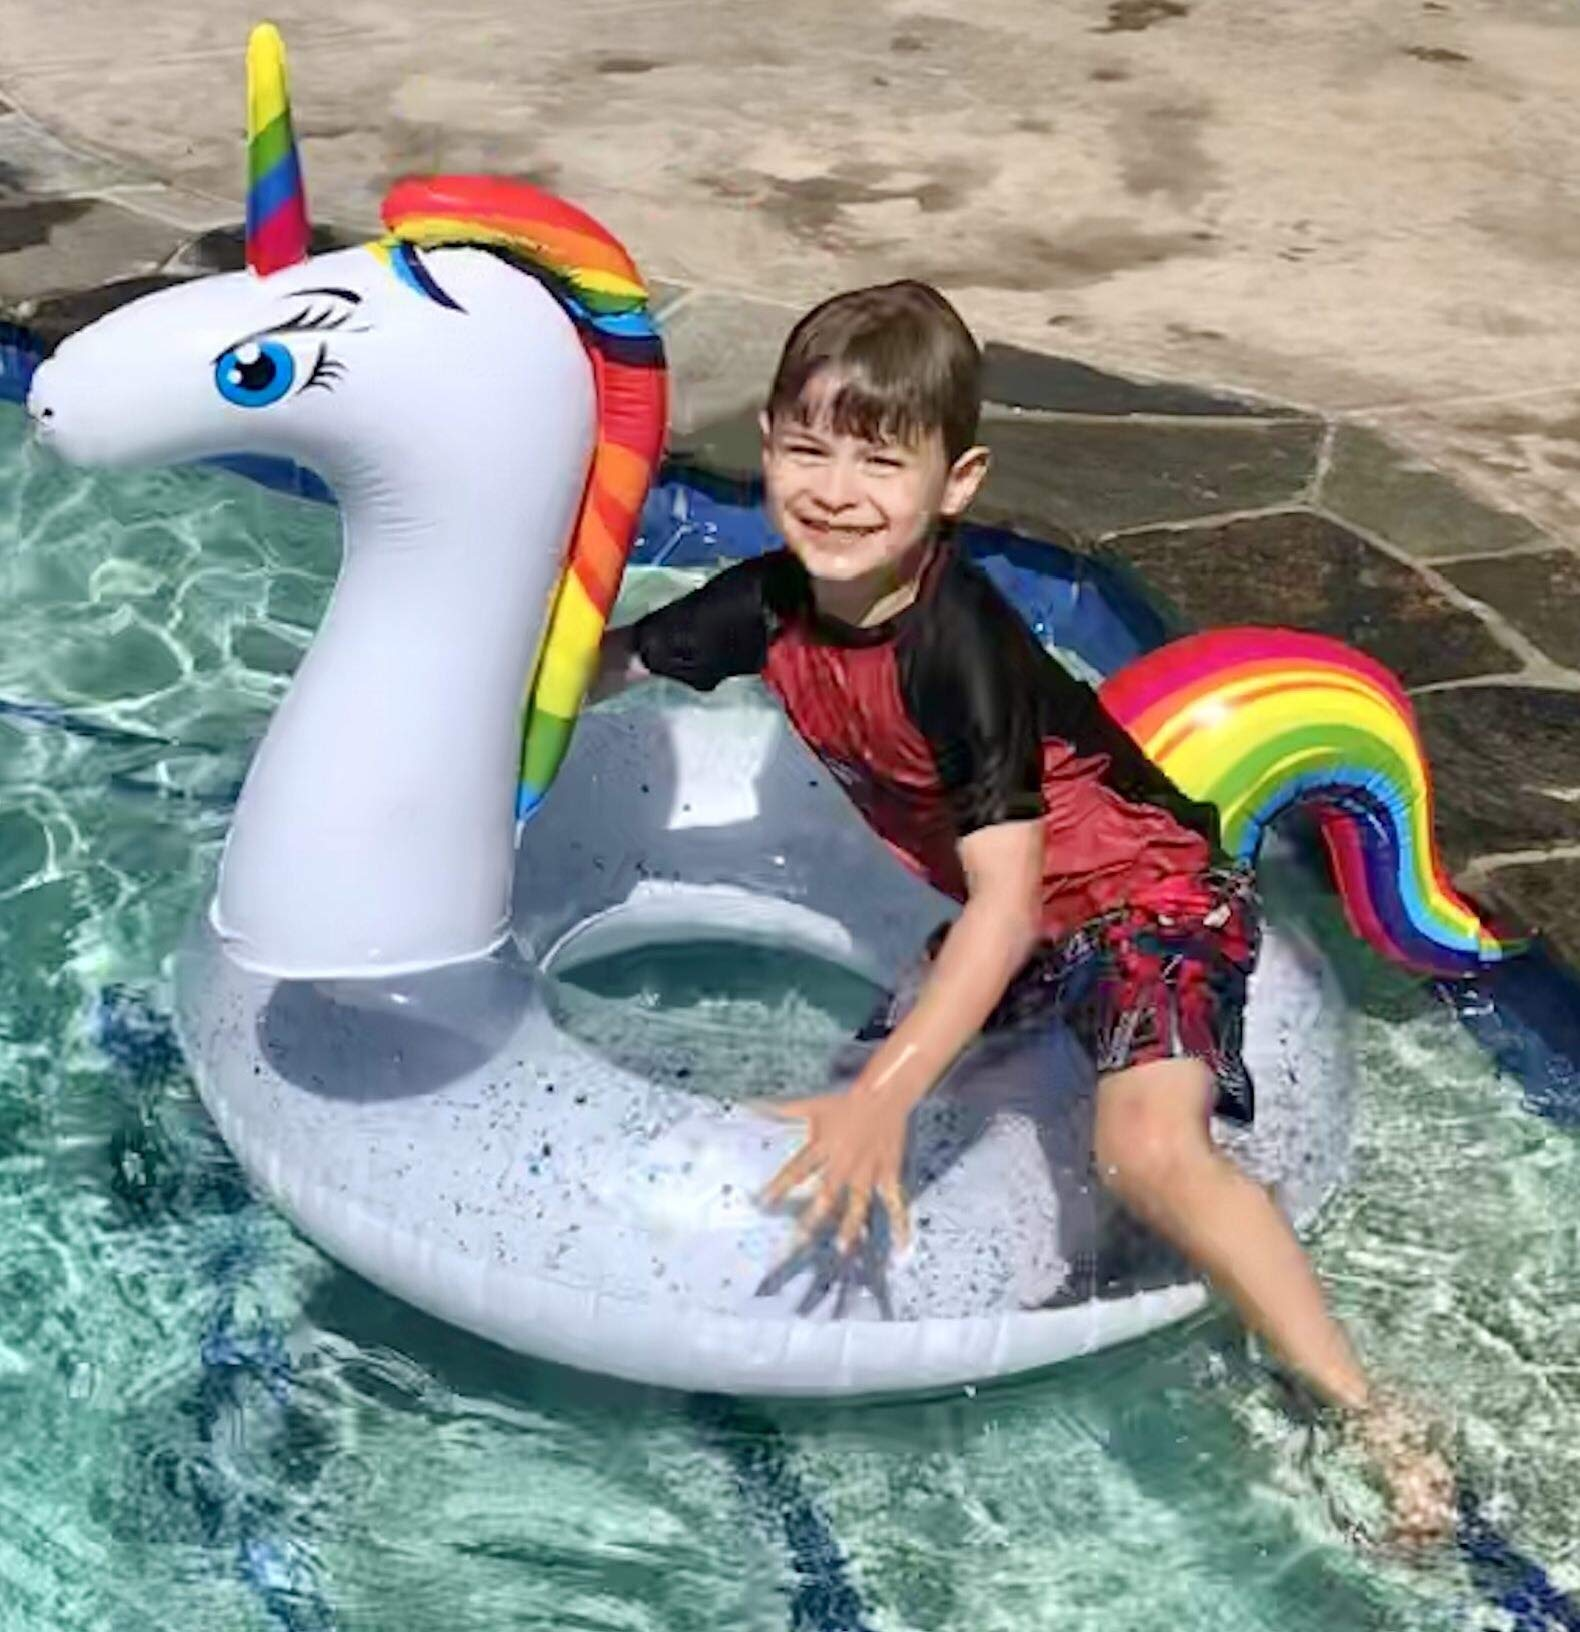 Unicorn Pool Floats for Kids - Glitter Filled - Ride ON Inflatable Unicorn Float for Pool Lake River RAFT - Giant… 5